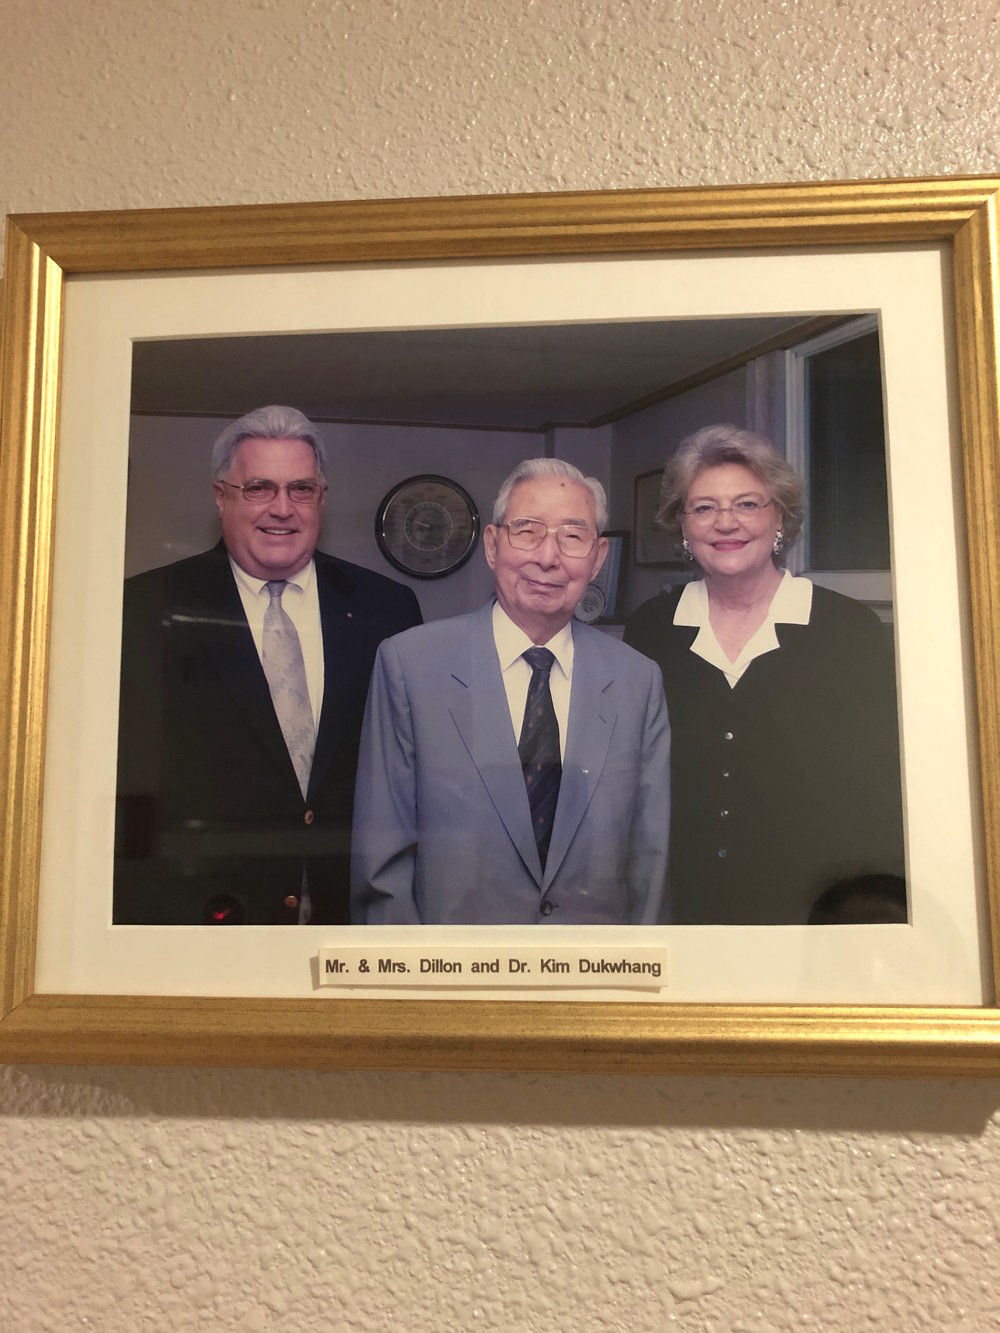 Founders of Dillon International, my American adoption agency, along with the Founder of Eastern